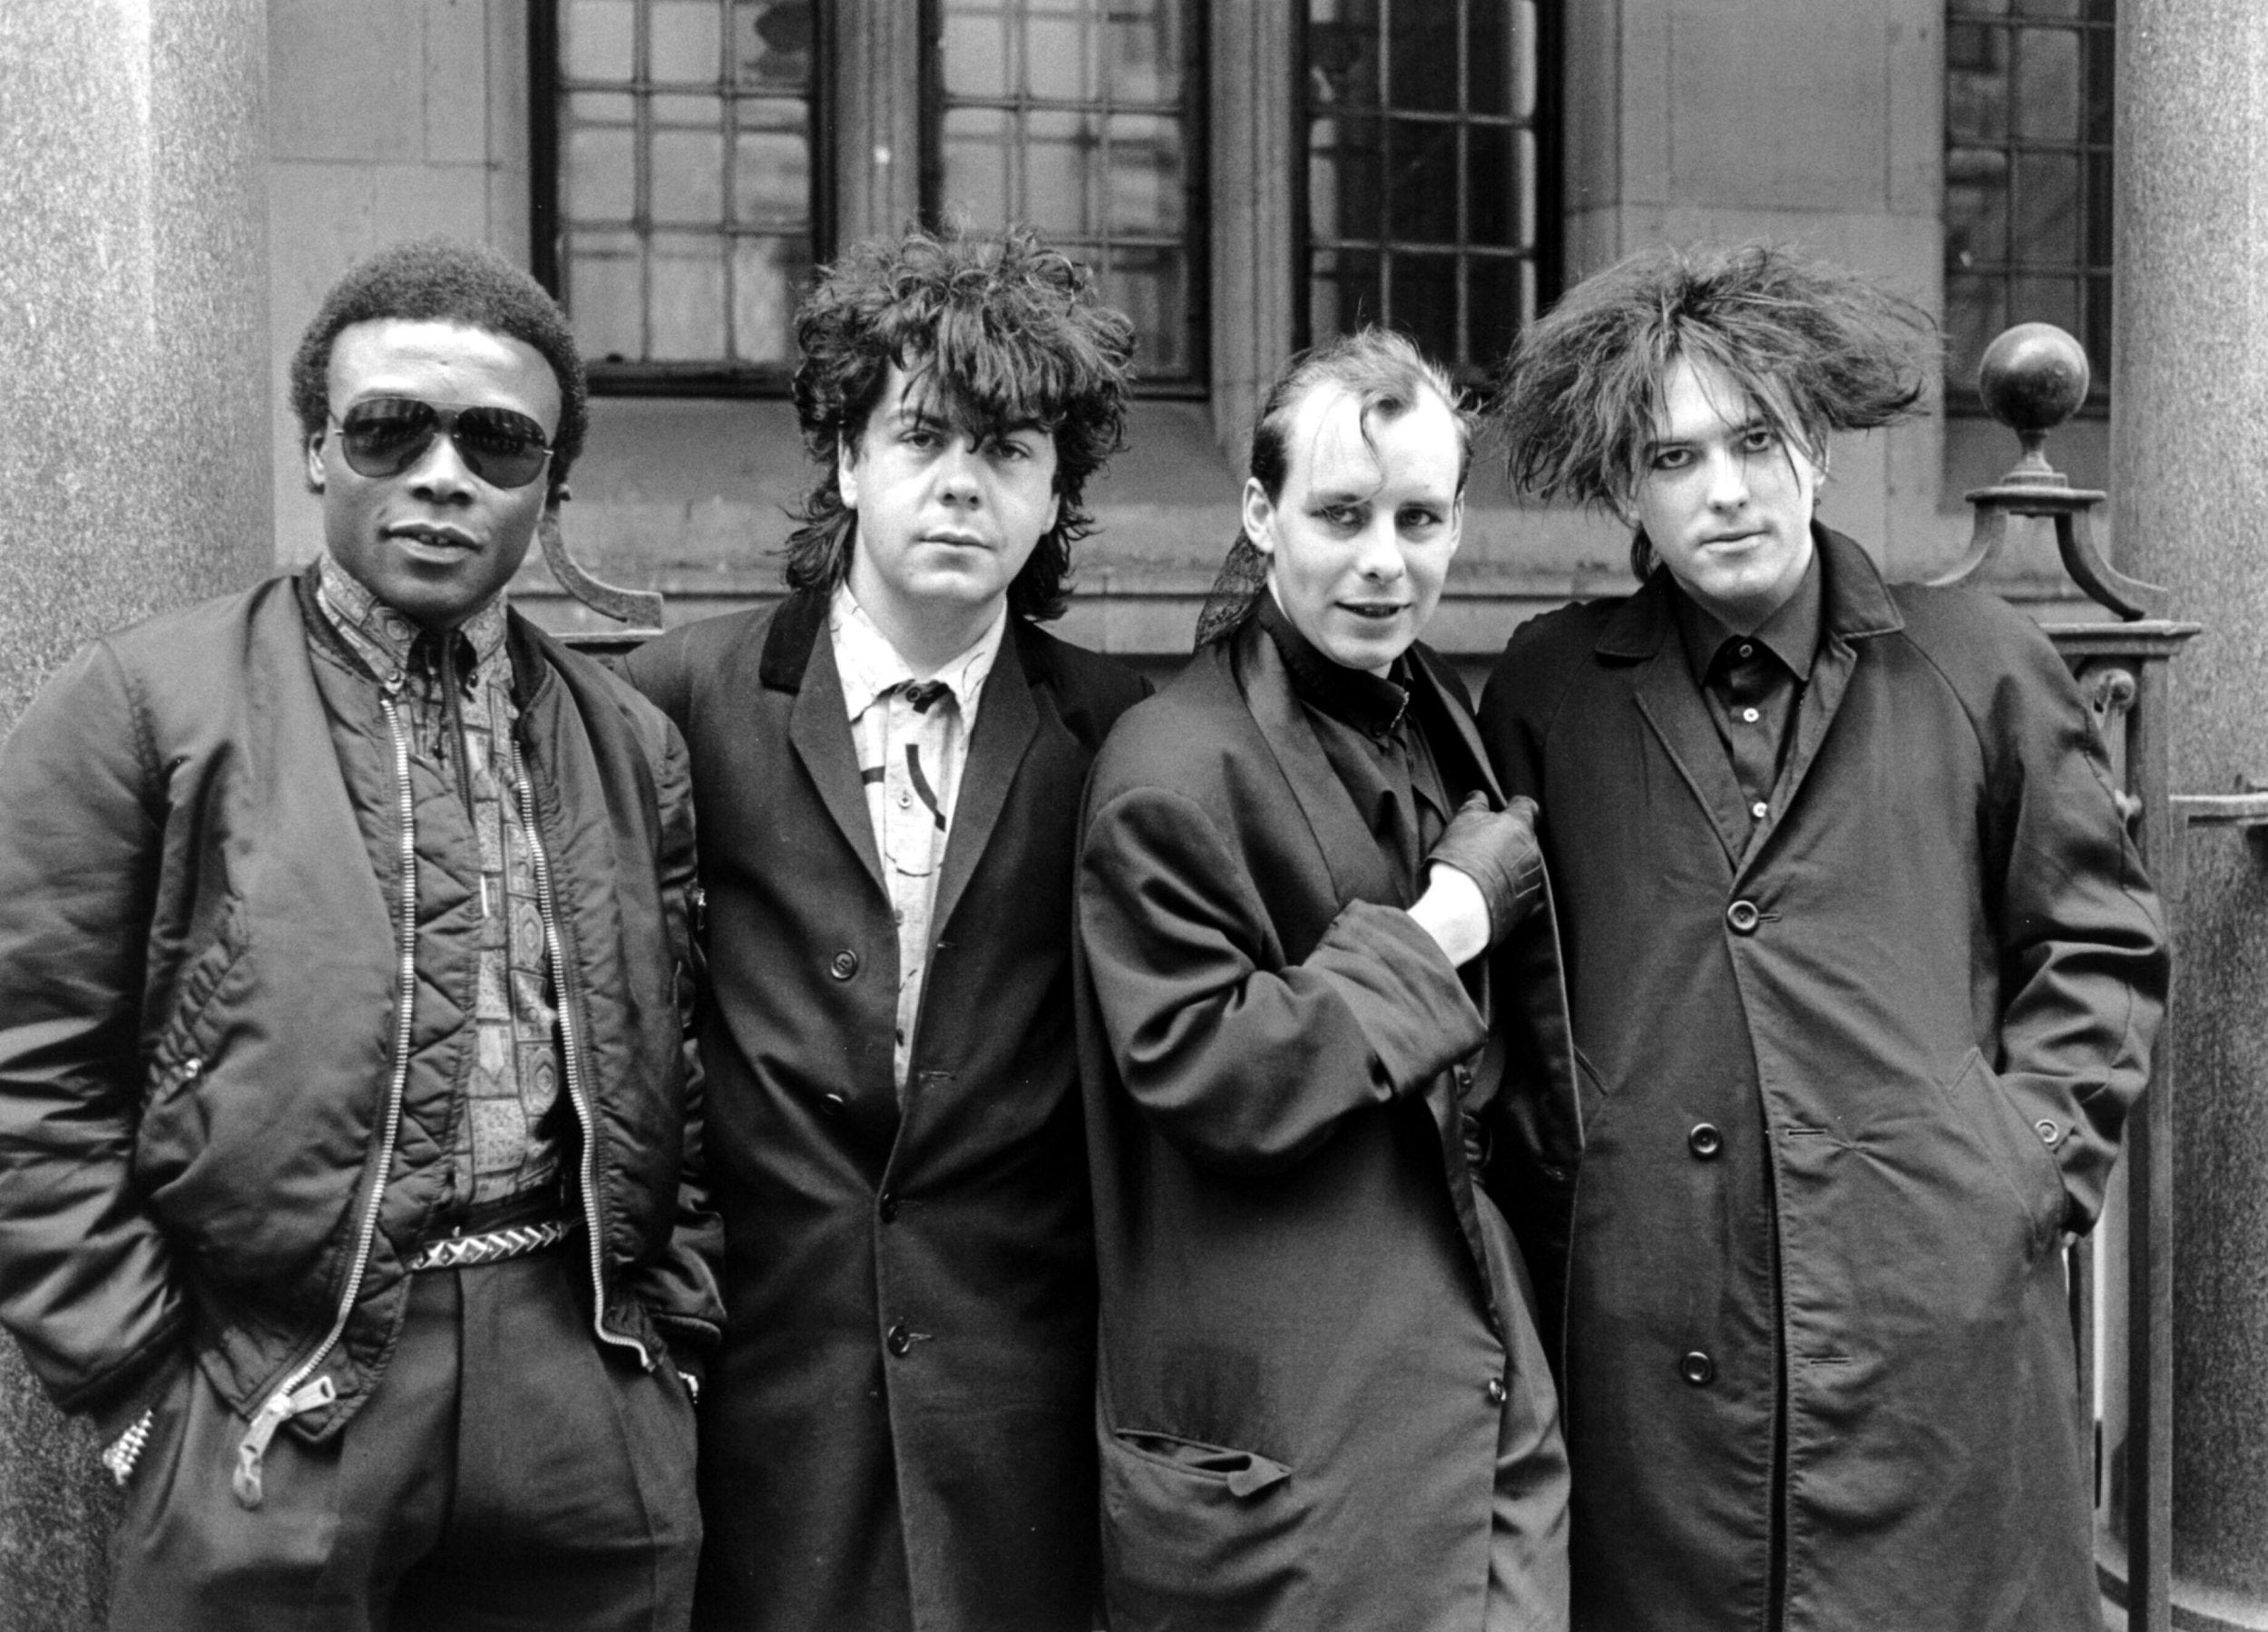 Andy Anderson death: Former drummer for The Cure and Iggy Pop dies, aged 68